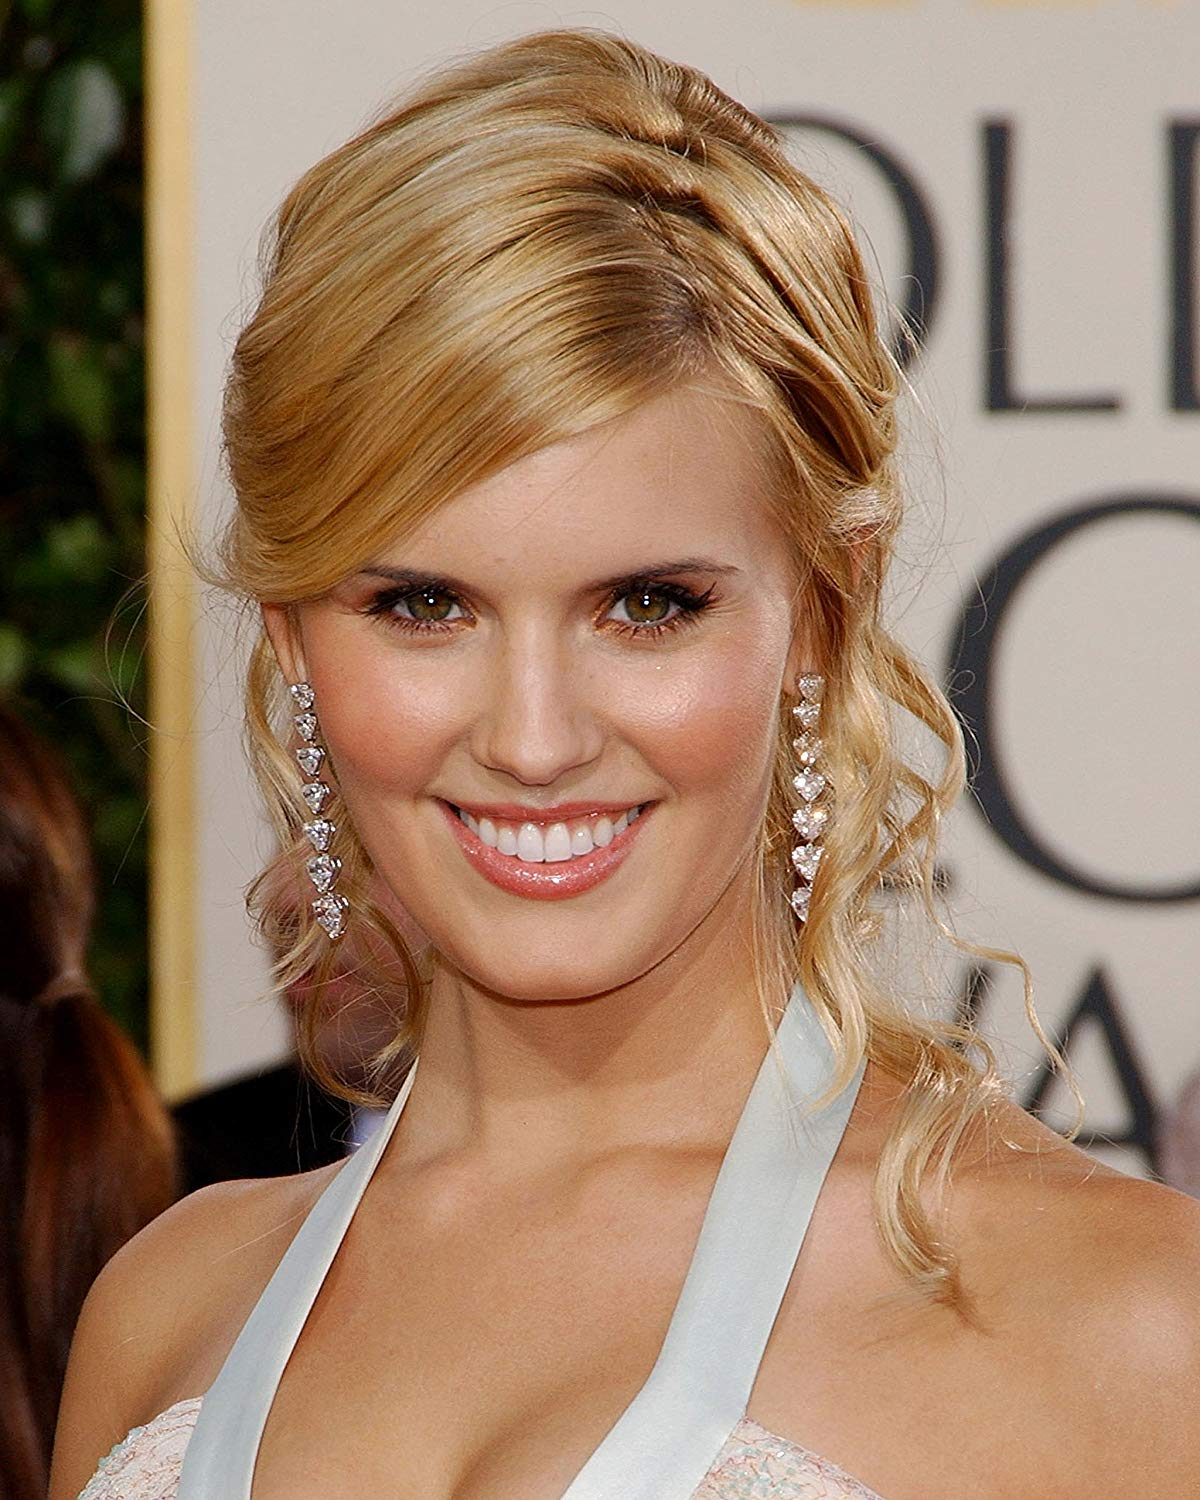 Maggie Grace Net Worth, Pics, TV Shows, Movies And